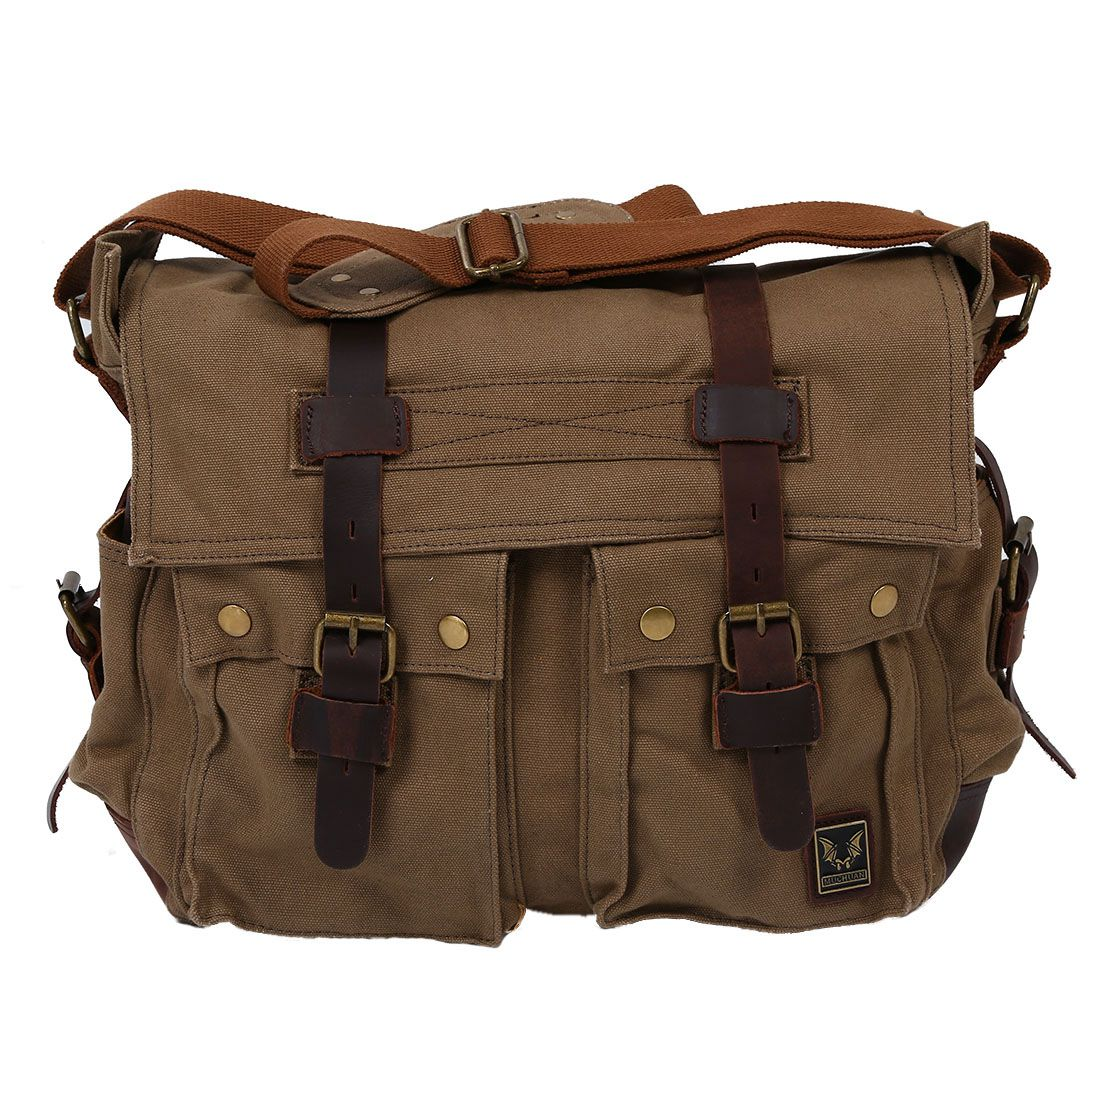 Men's Vintage Canvas Leather School Shoulder Bag Messenger Sling Crossbody Bag Satchel aerlis brand men handbag canvas pu leather satchel messenger sling bag versatile male casual crossbody shoulder school bags 4390